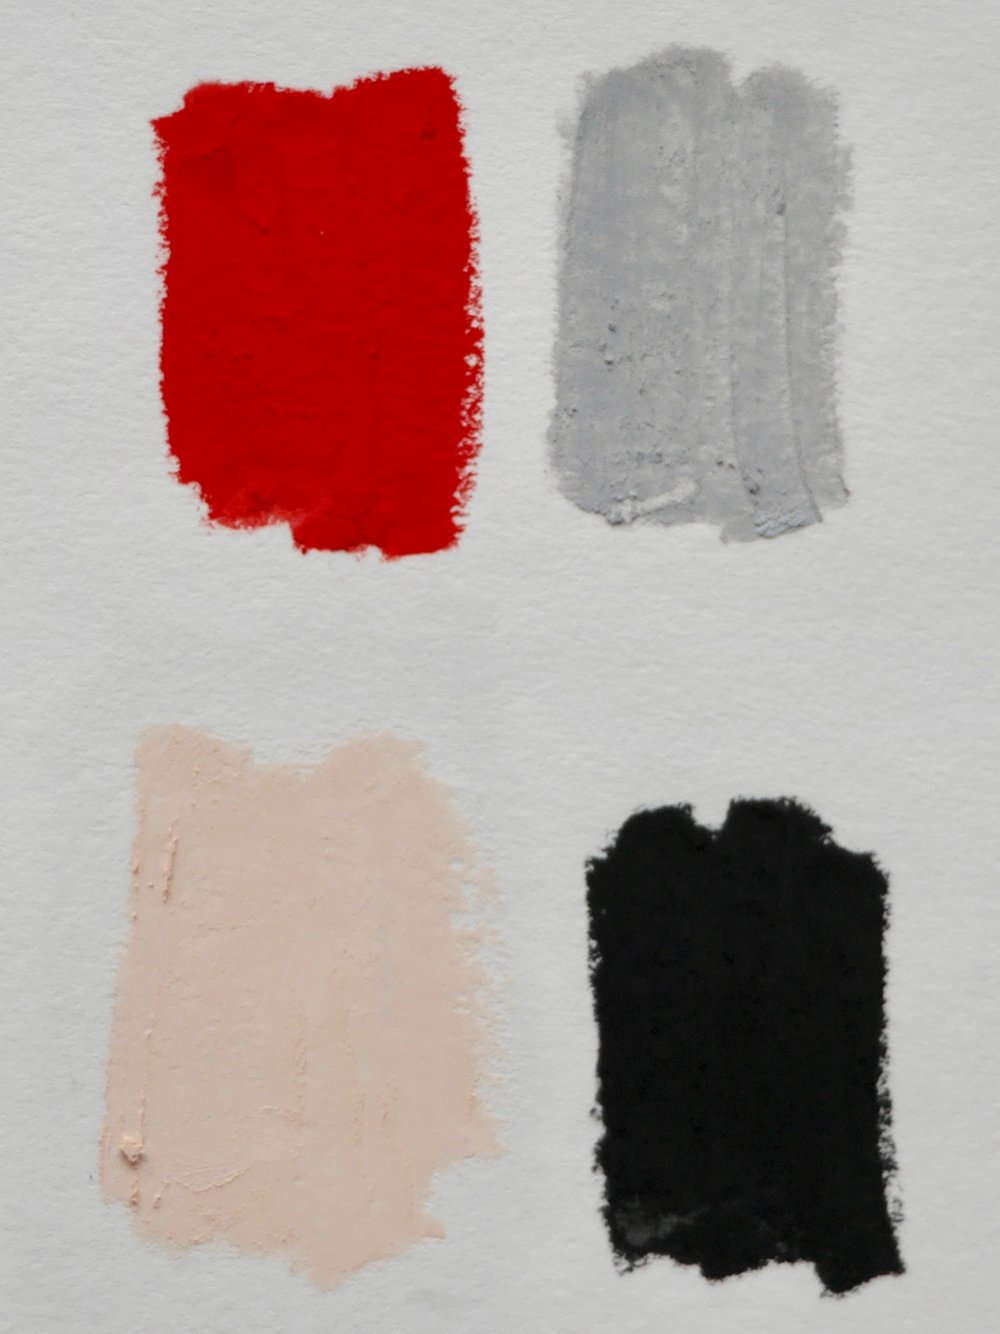 Above: A bold red color and 3 neutral colors. The neutral colors are mixed in brightness.